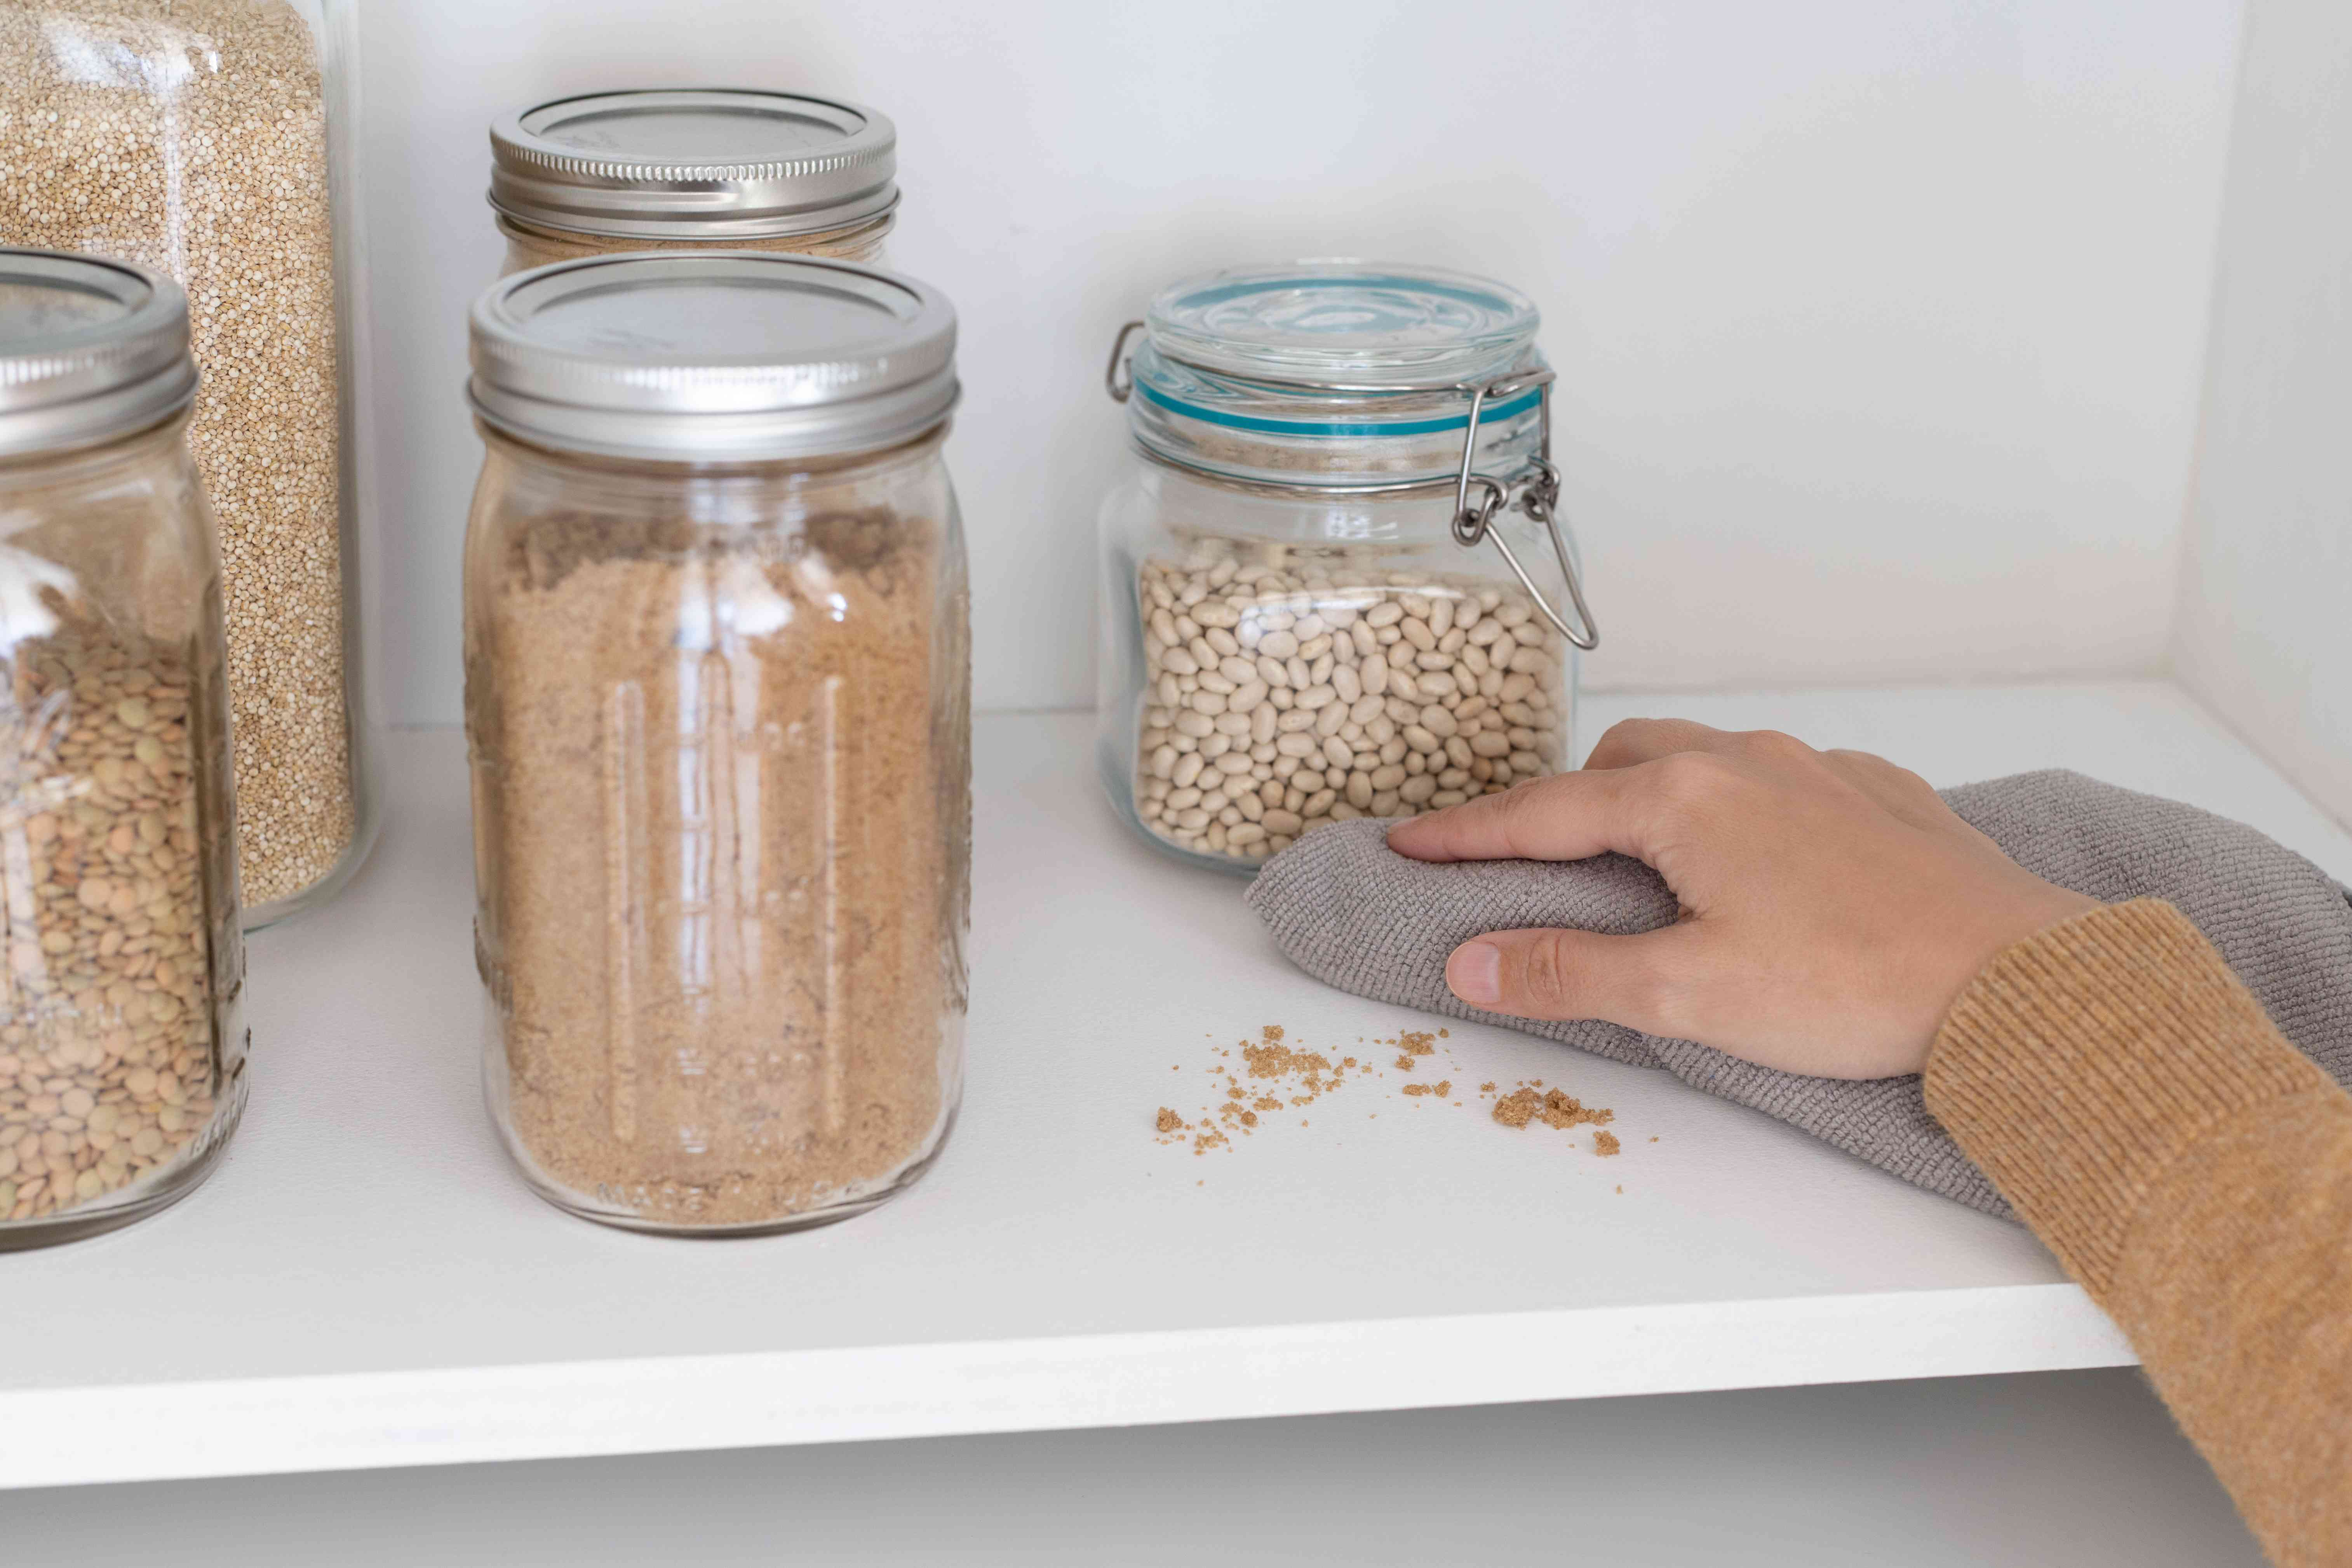 Spilled food crumbs on shelf being cleaned up with gray towel to prevent ants